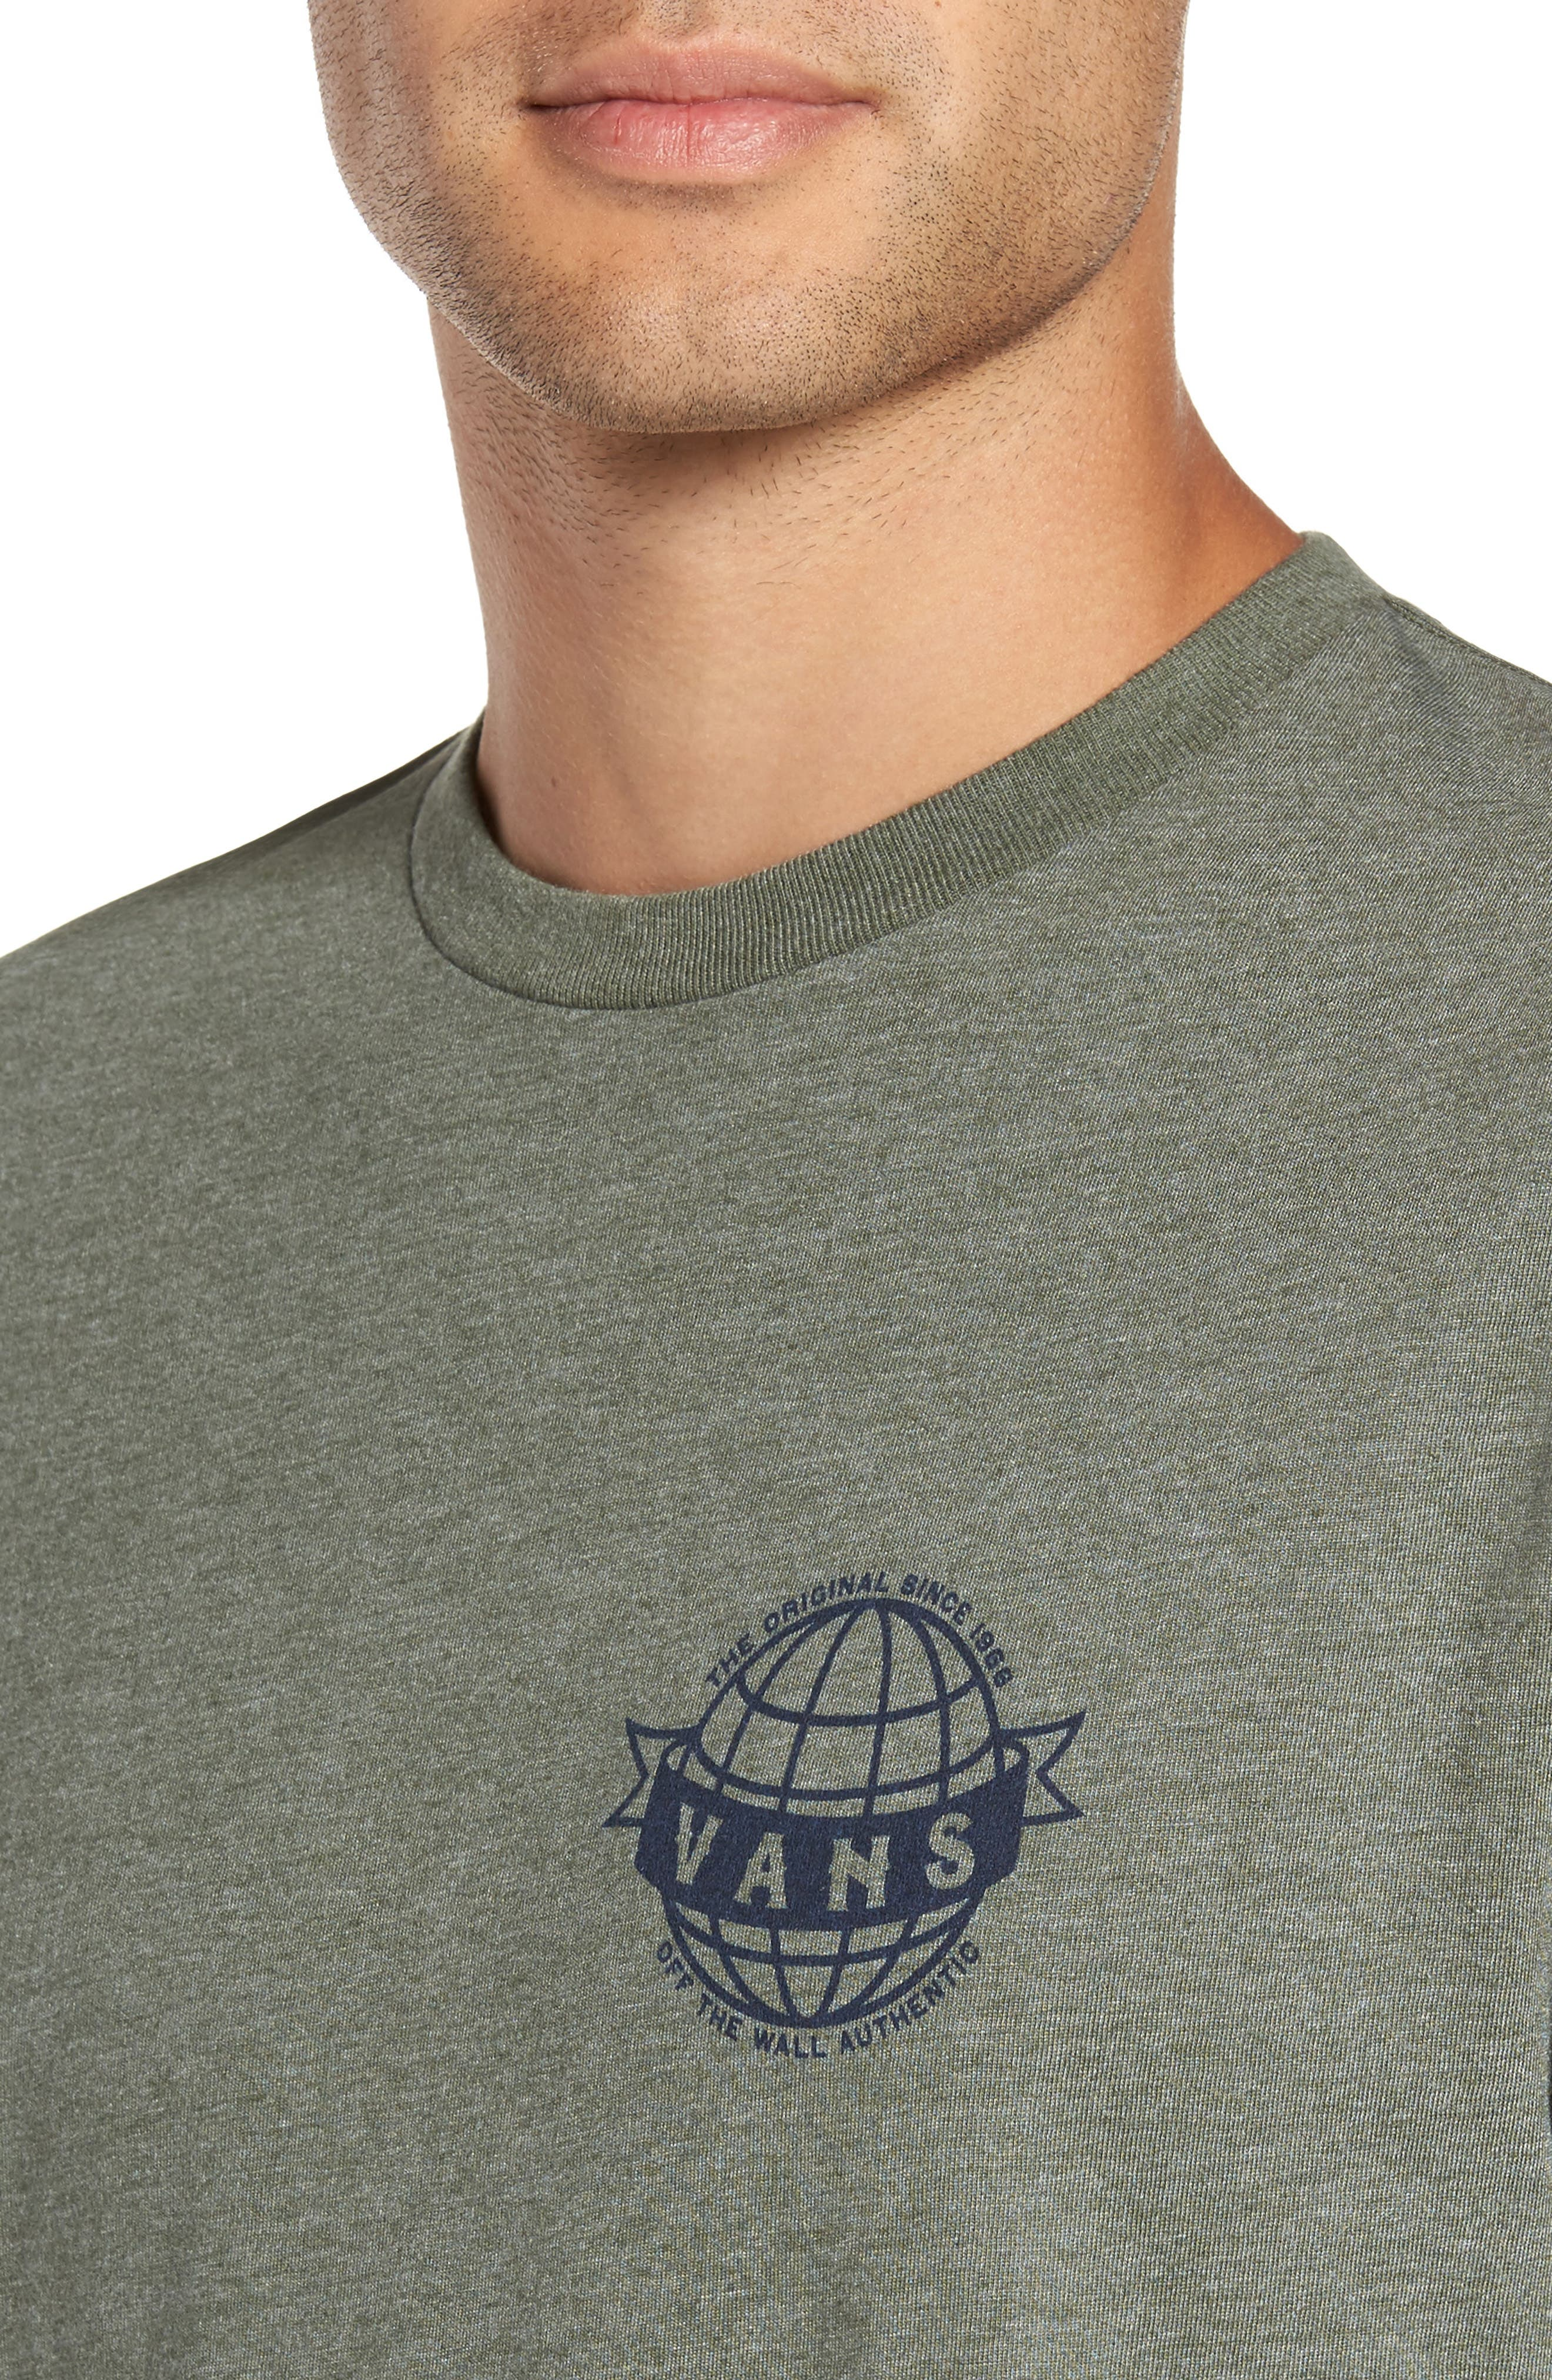 Global Landing Logo Graphic T-Shirt,                             Alternate thumbnail 4, color,                             Olive Heather